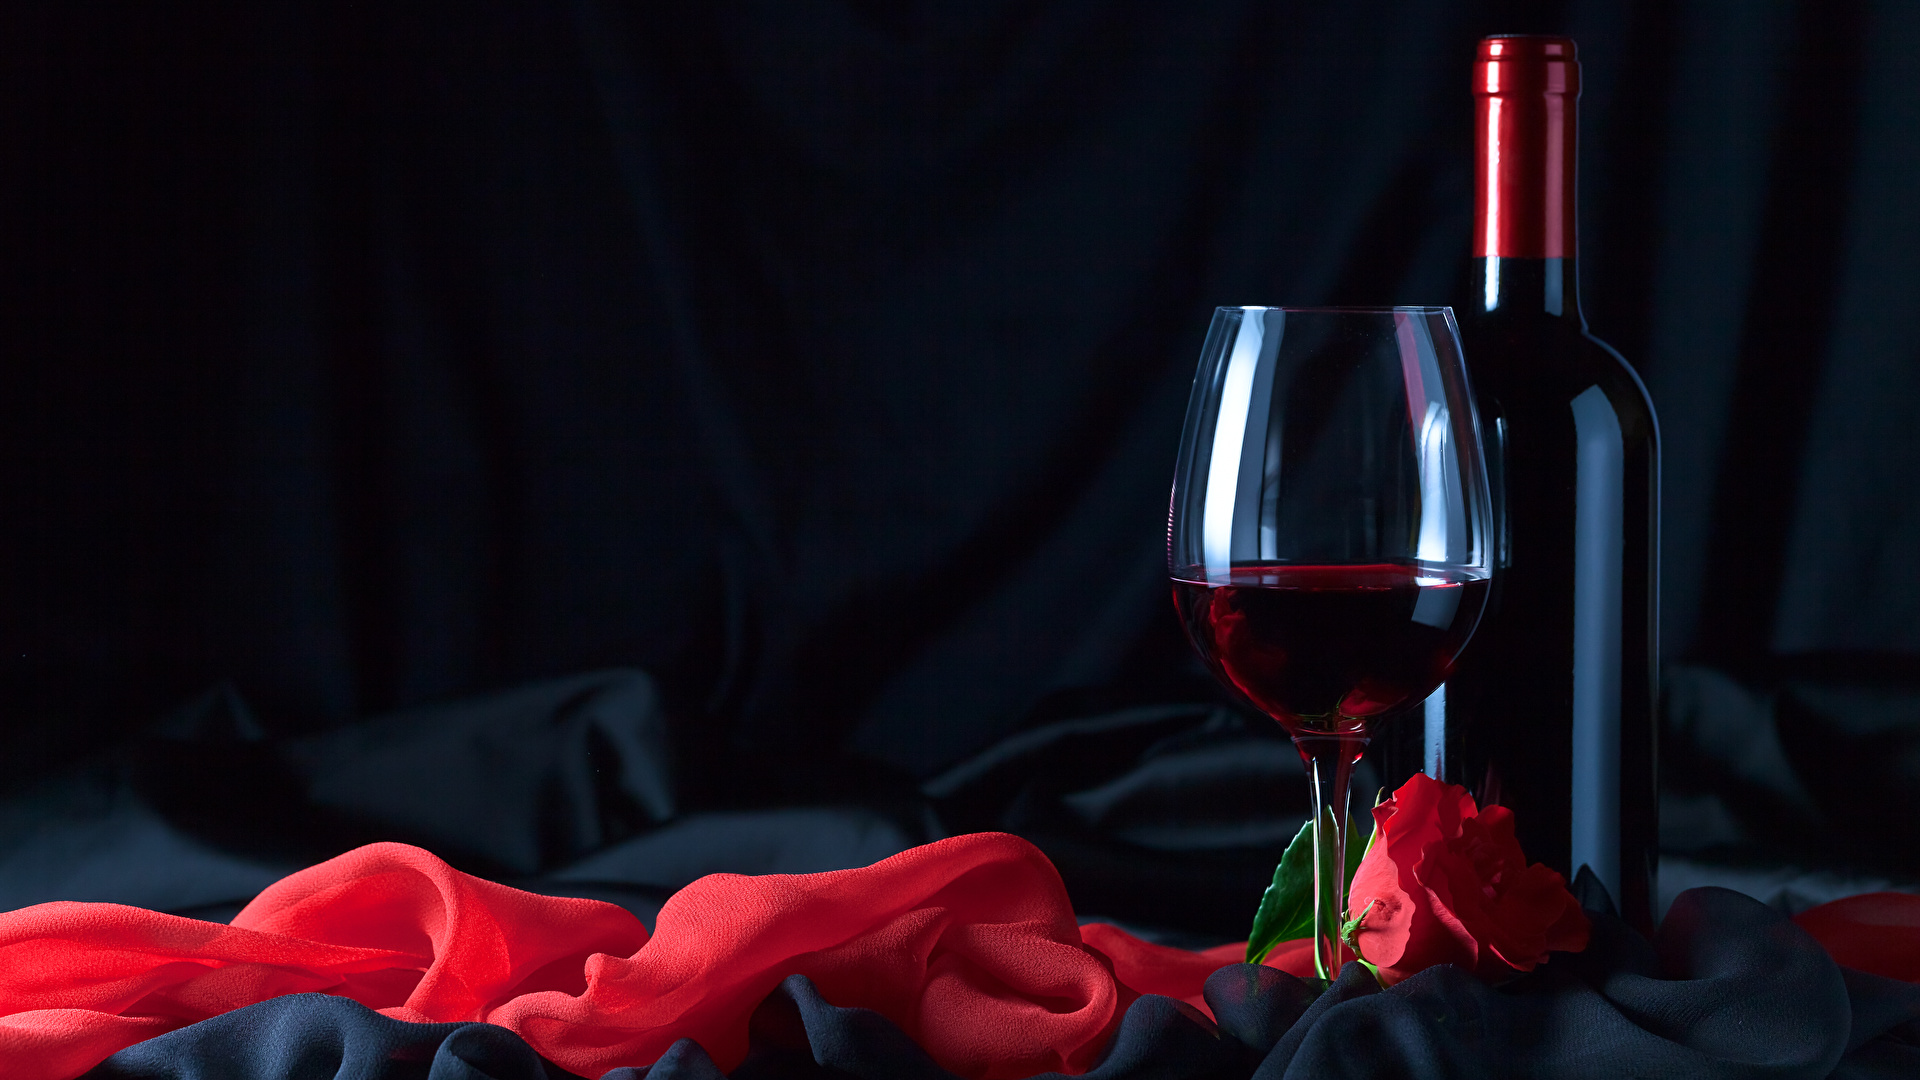 Wallpapers Red Wine Roses Food Bottle Stemware Holidays 1920x1080